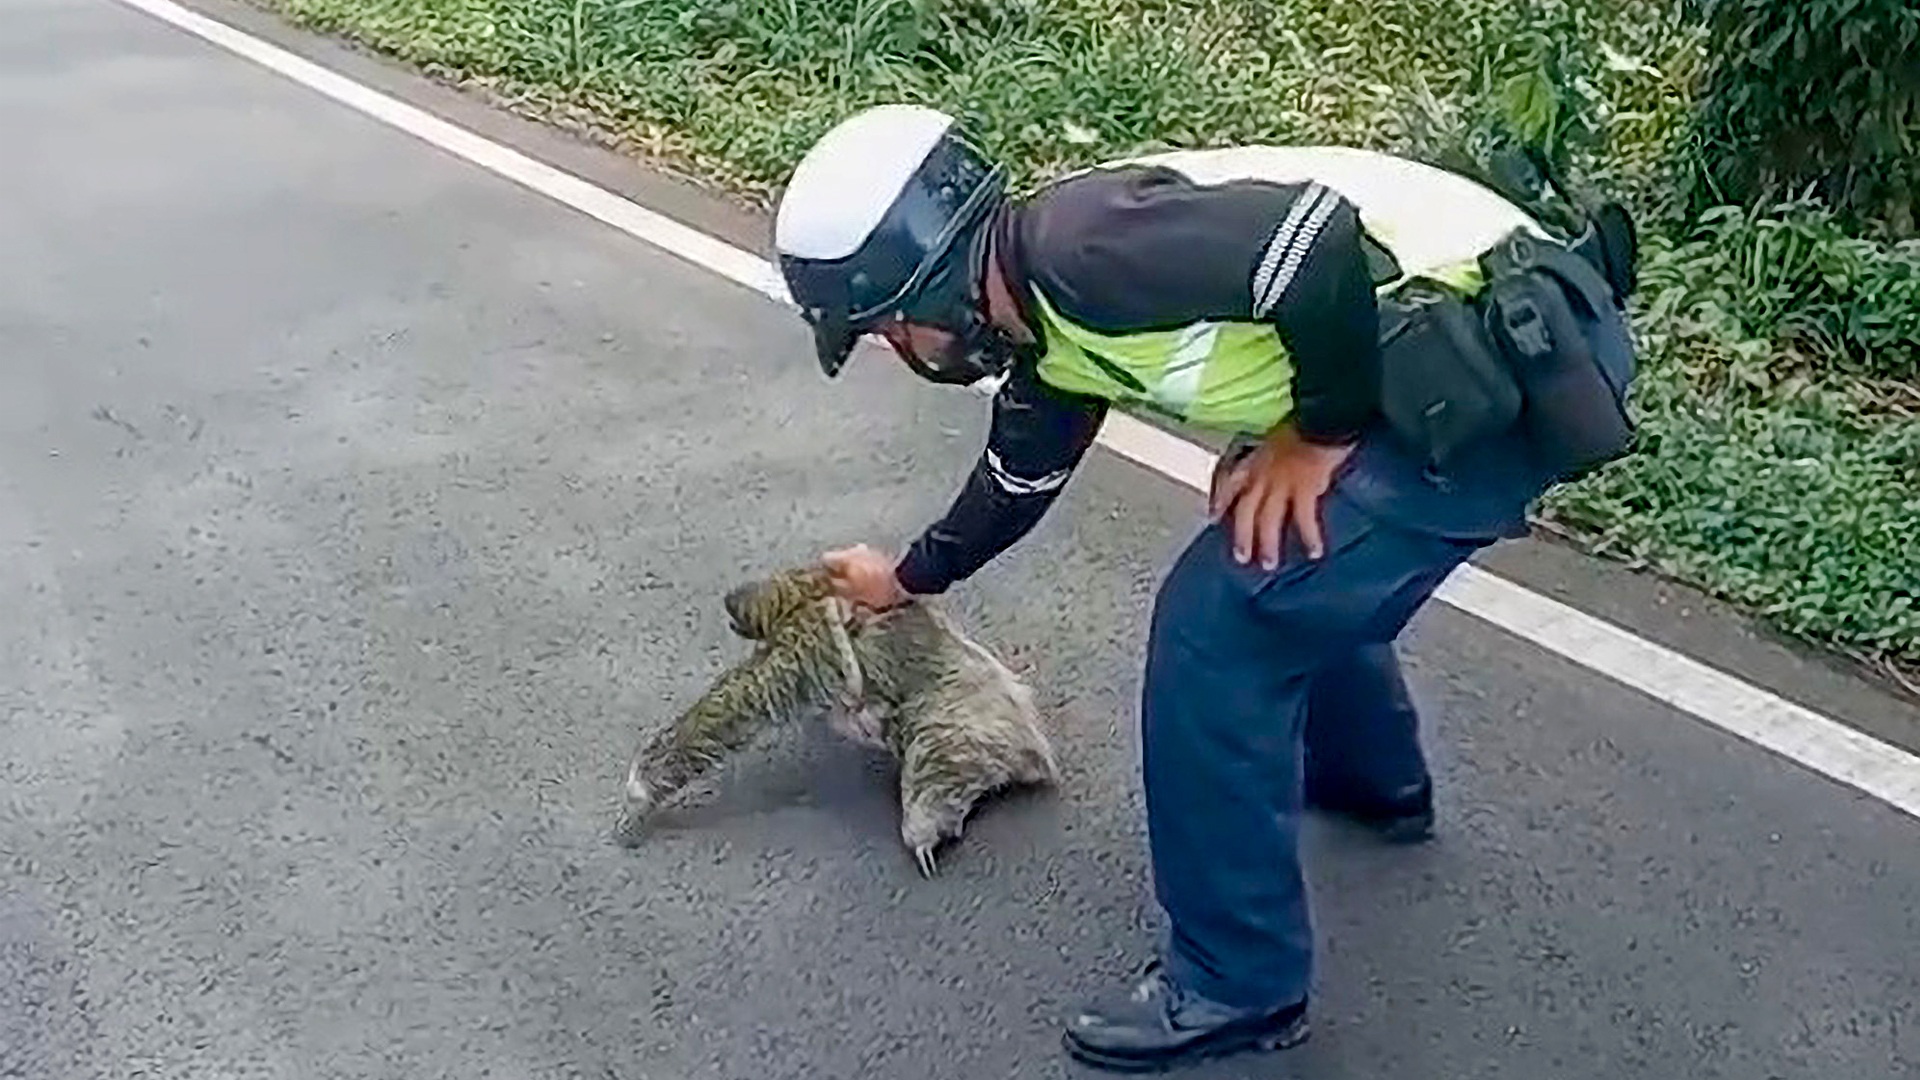 VIDEO: A Cop Rescues Slow-Moving Sloth From Middle Of Road